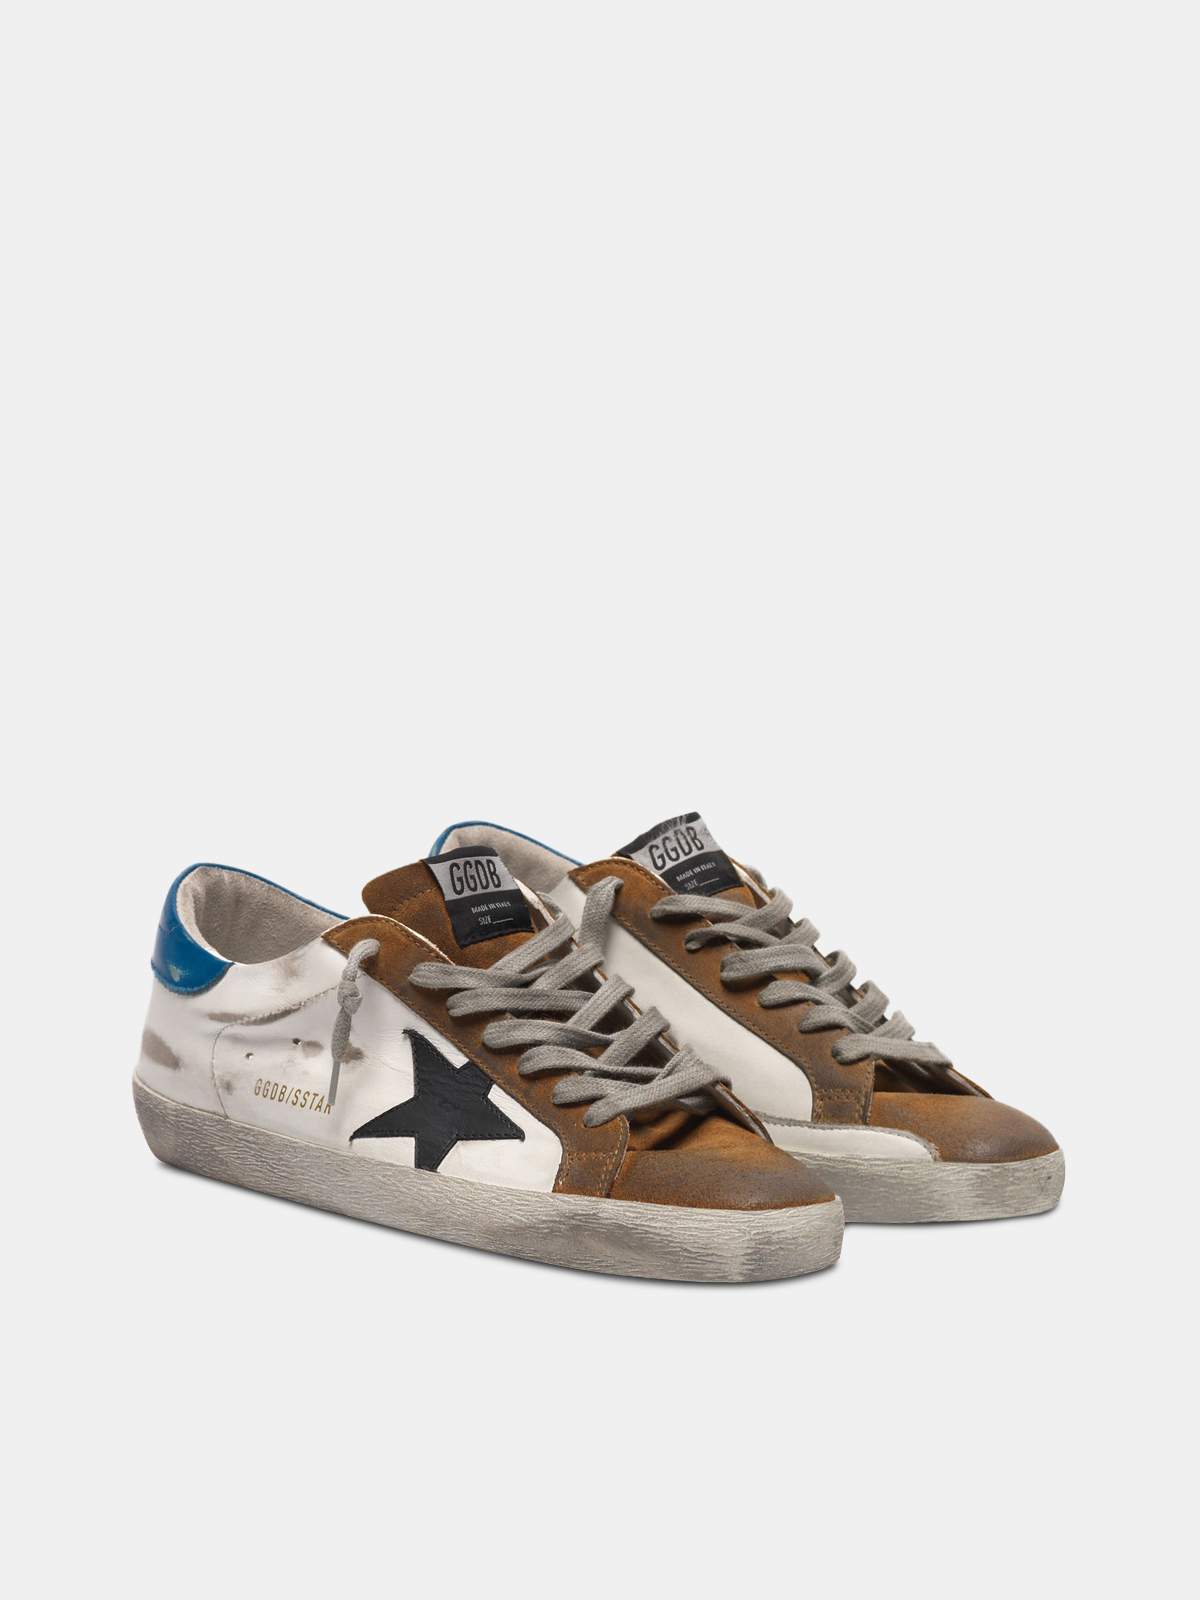 Golden Goose - Two-tone Superstar sneakers in leather and copper suede in